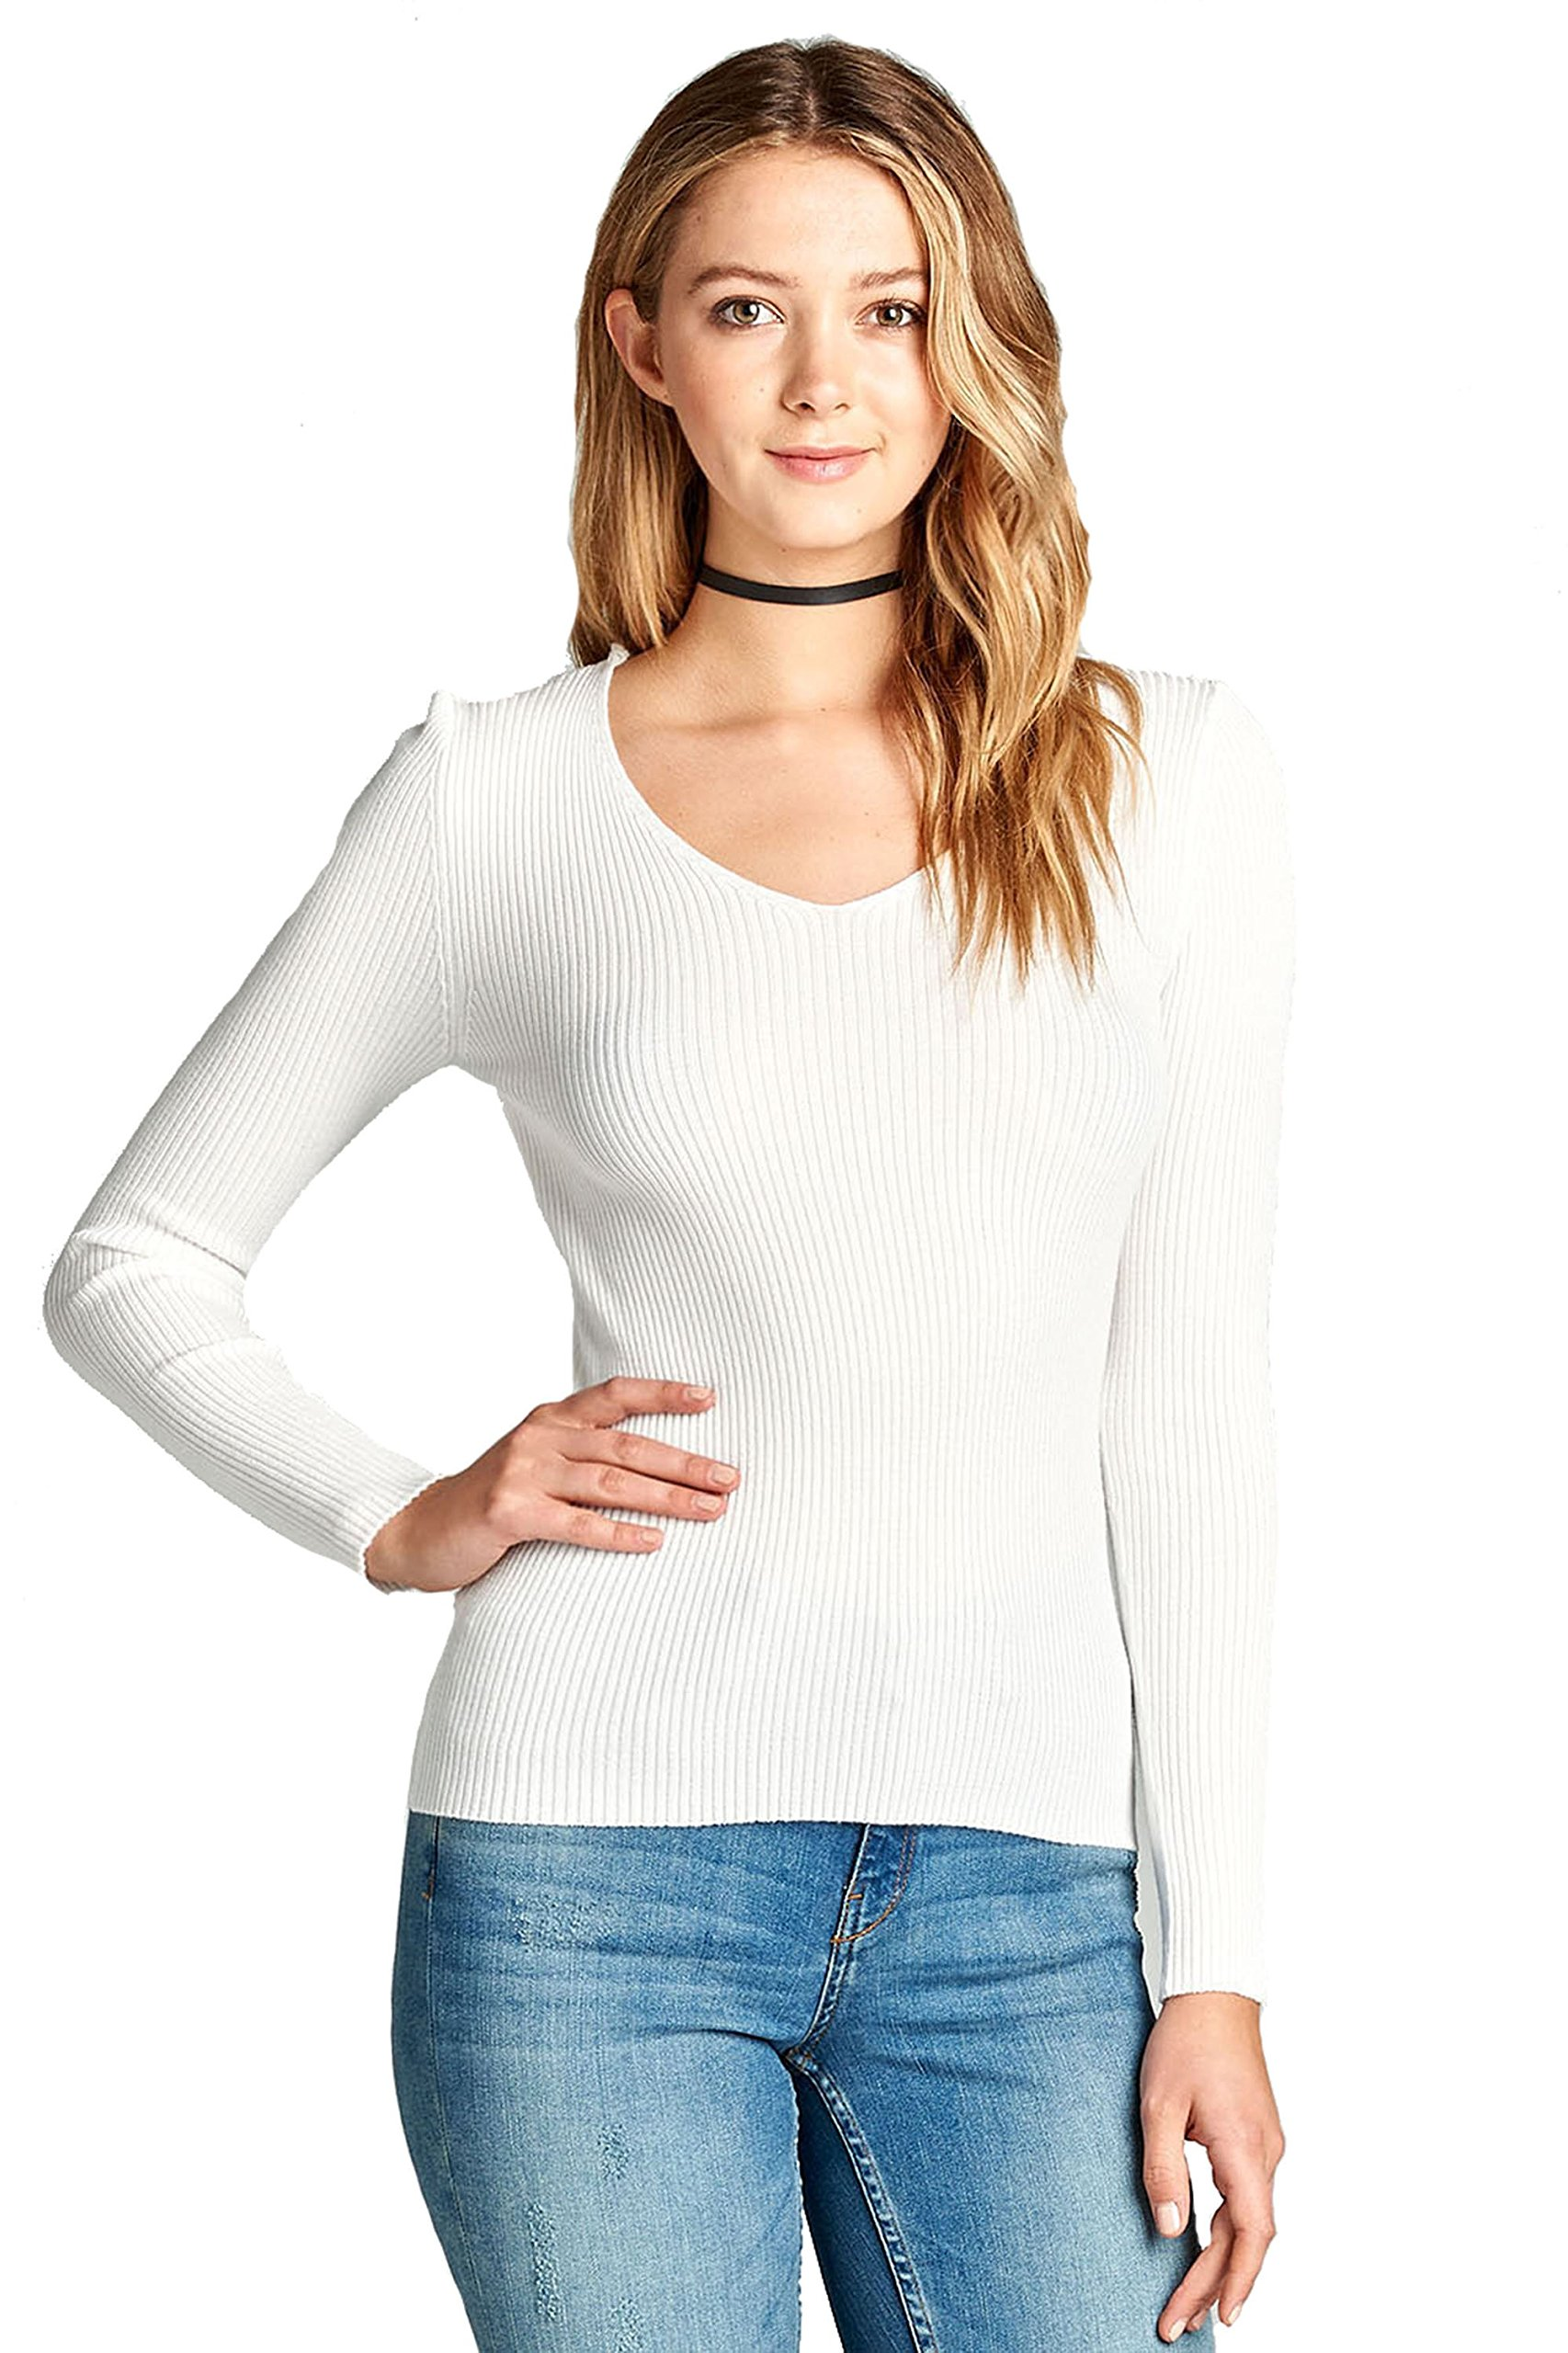 Khanomak Plain Solid Stretch Fitted Long Sleeve V Neck Ribbed Knit Lightweight Sweater Top (Small, Off White)